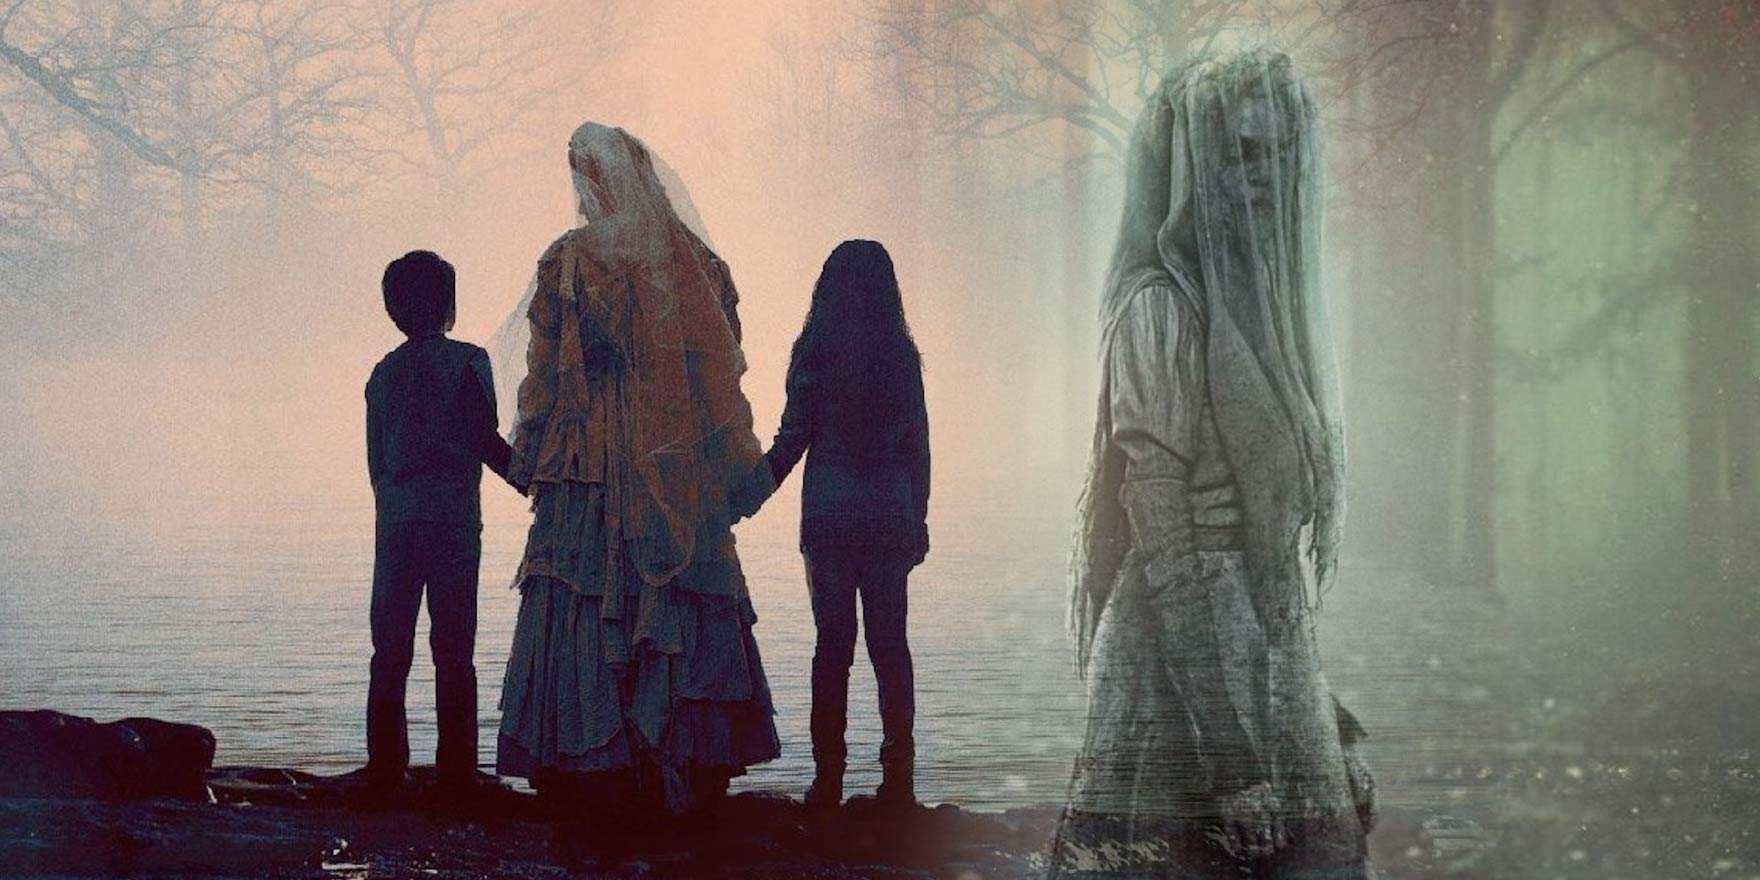 The Curse of La Llorona - Header Image